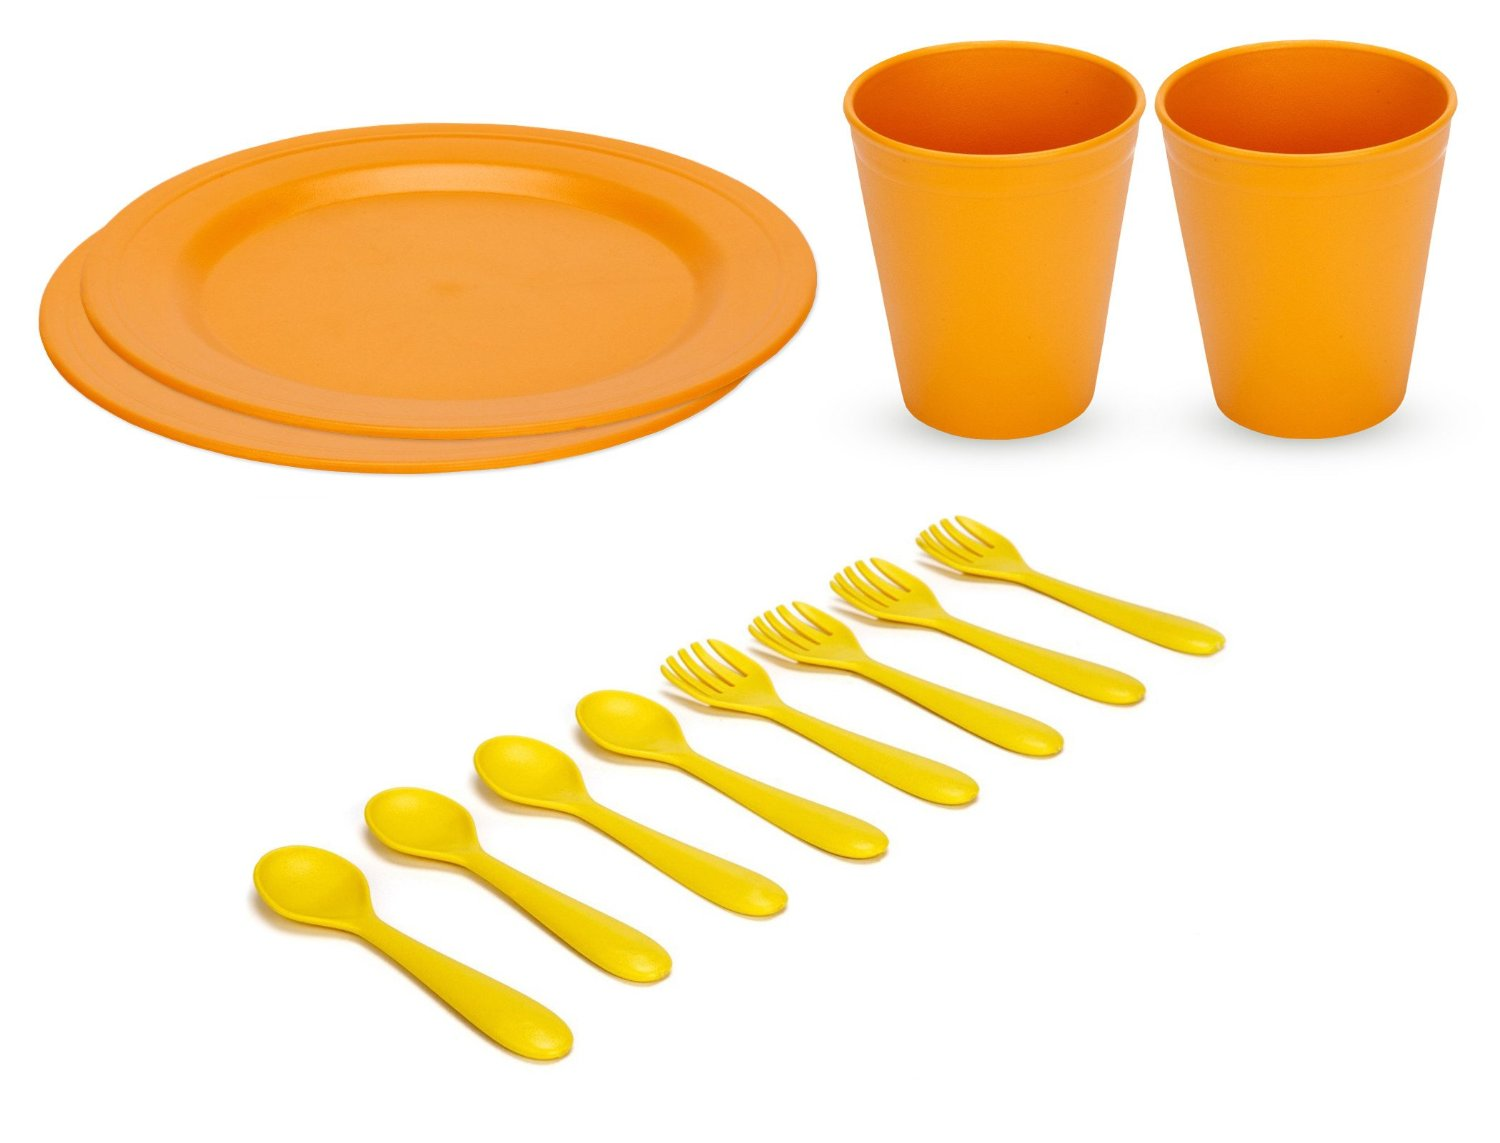 Green Eats Large Plates with Tumblers & Feeding Spoons & Forks, Orange by Green Eats